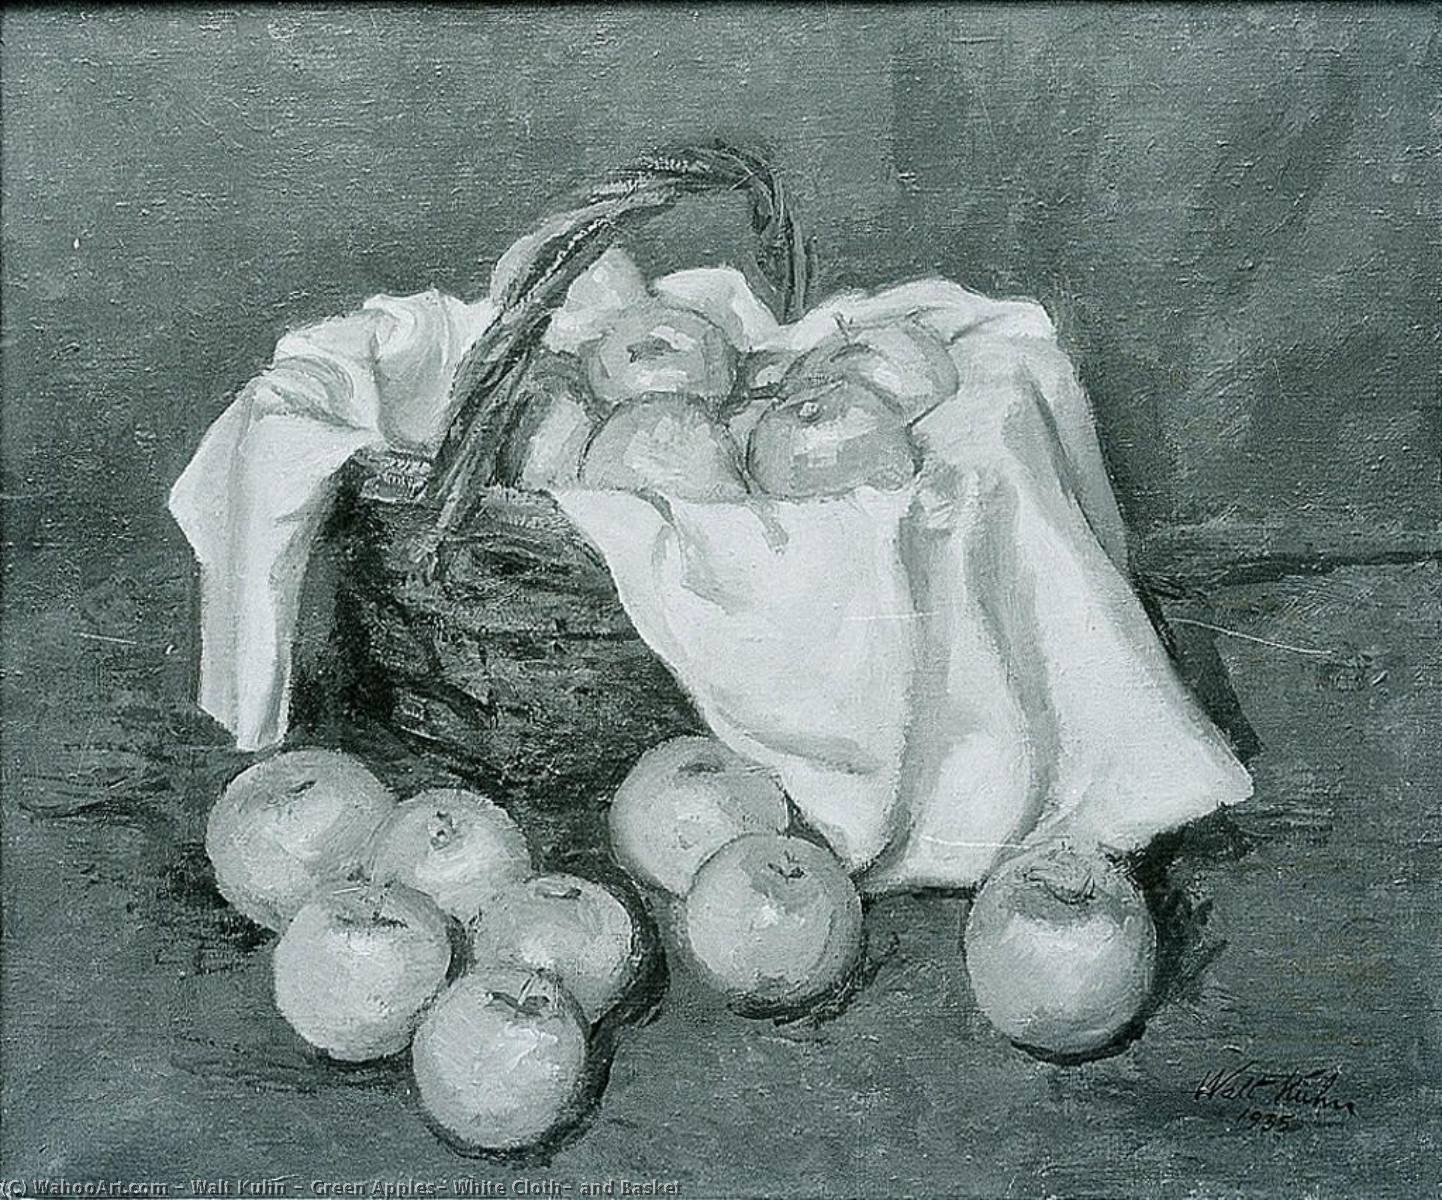 Green Apples, White Cloth, and Basket, 1935 by Walt Kuhn (1877-1949) | Museum Quality Reproductions | WahooArt.com